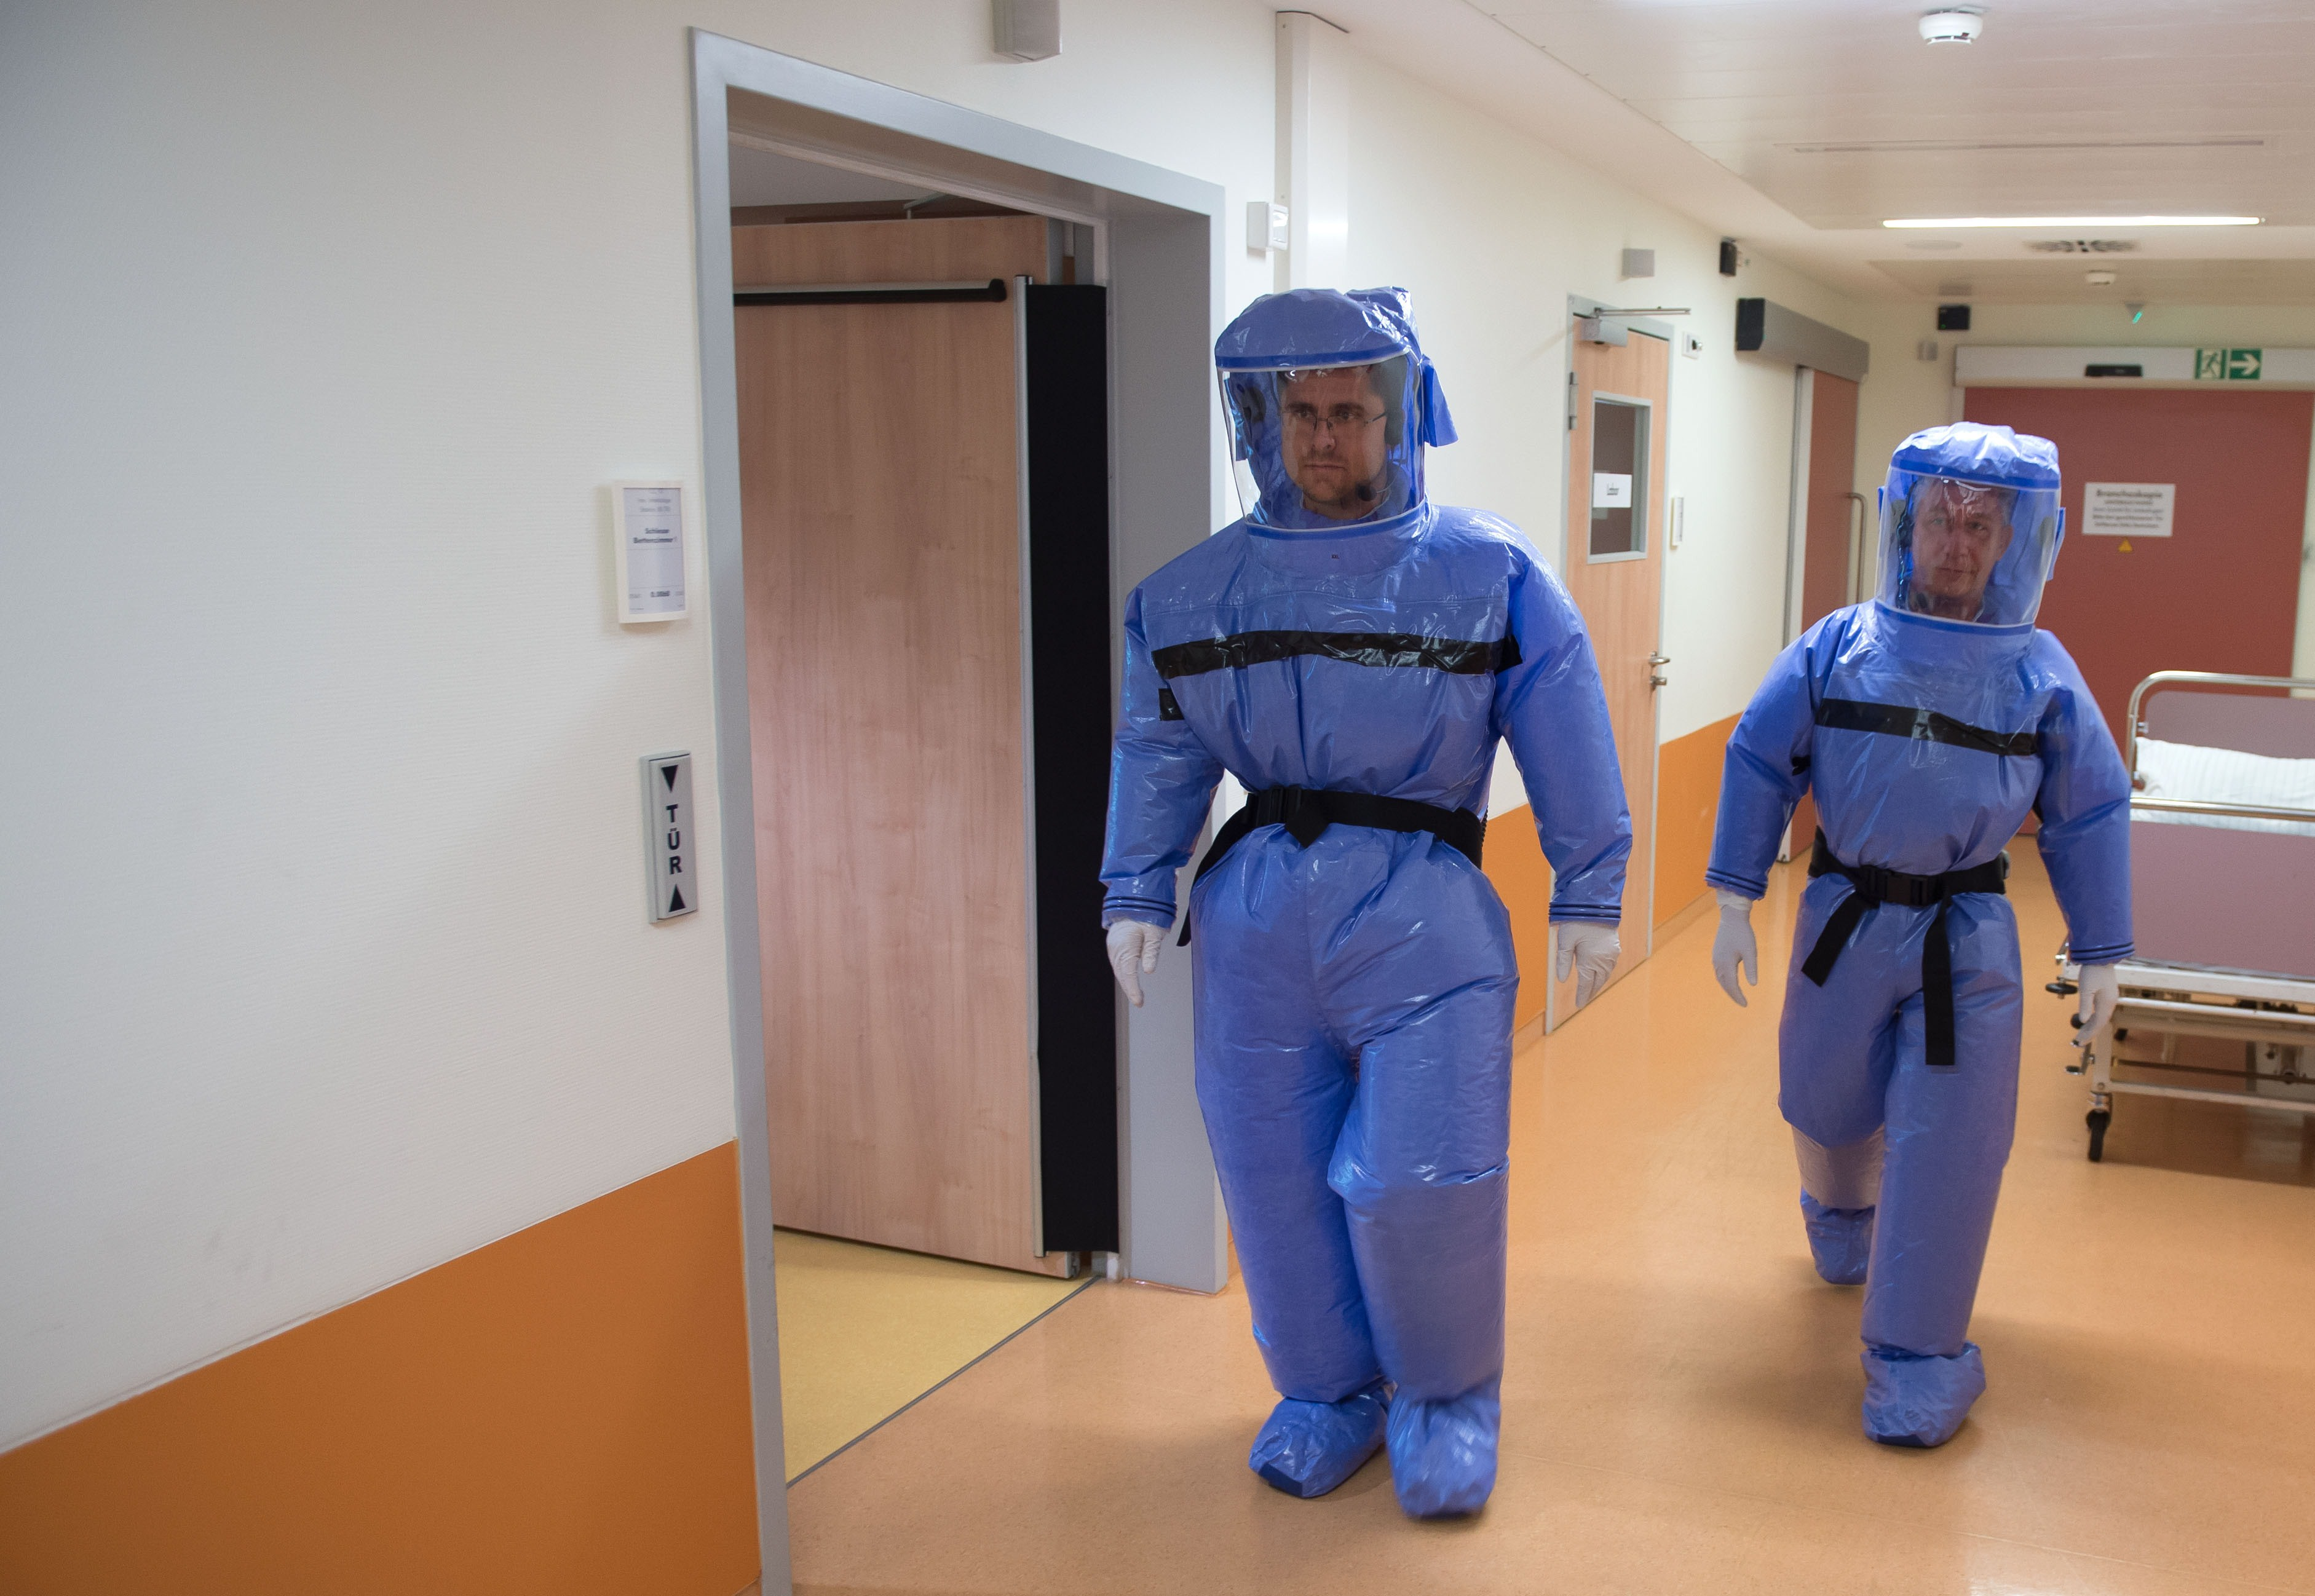 Infectious disease specialist Florian Steiner and quarantine office leader Thomas Klotzkowski wear protective clothing as they demonstrate the proceedings at the ward of Berlin's Charite hospital on August 11, 2014.